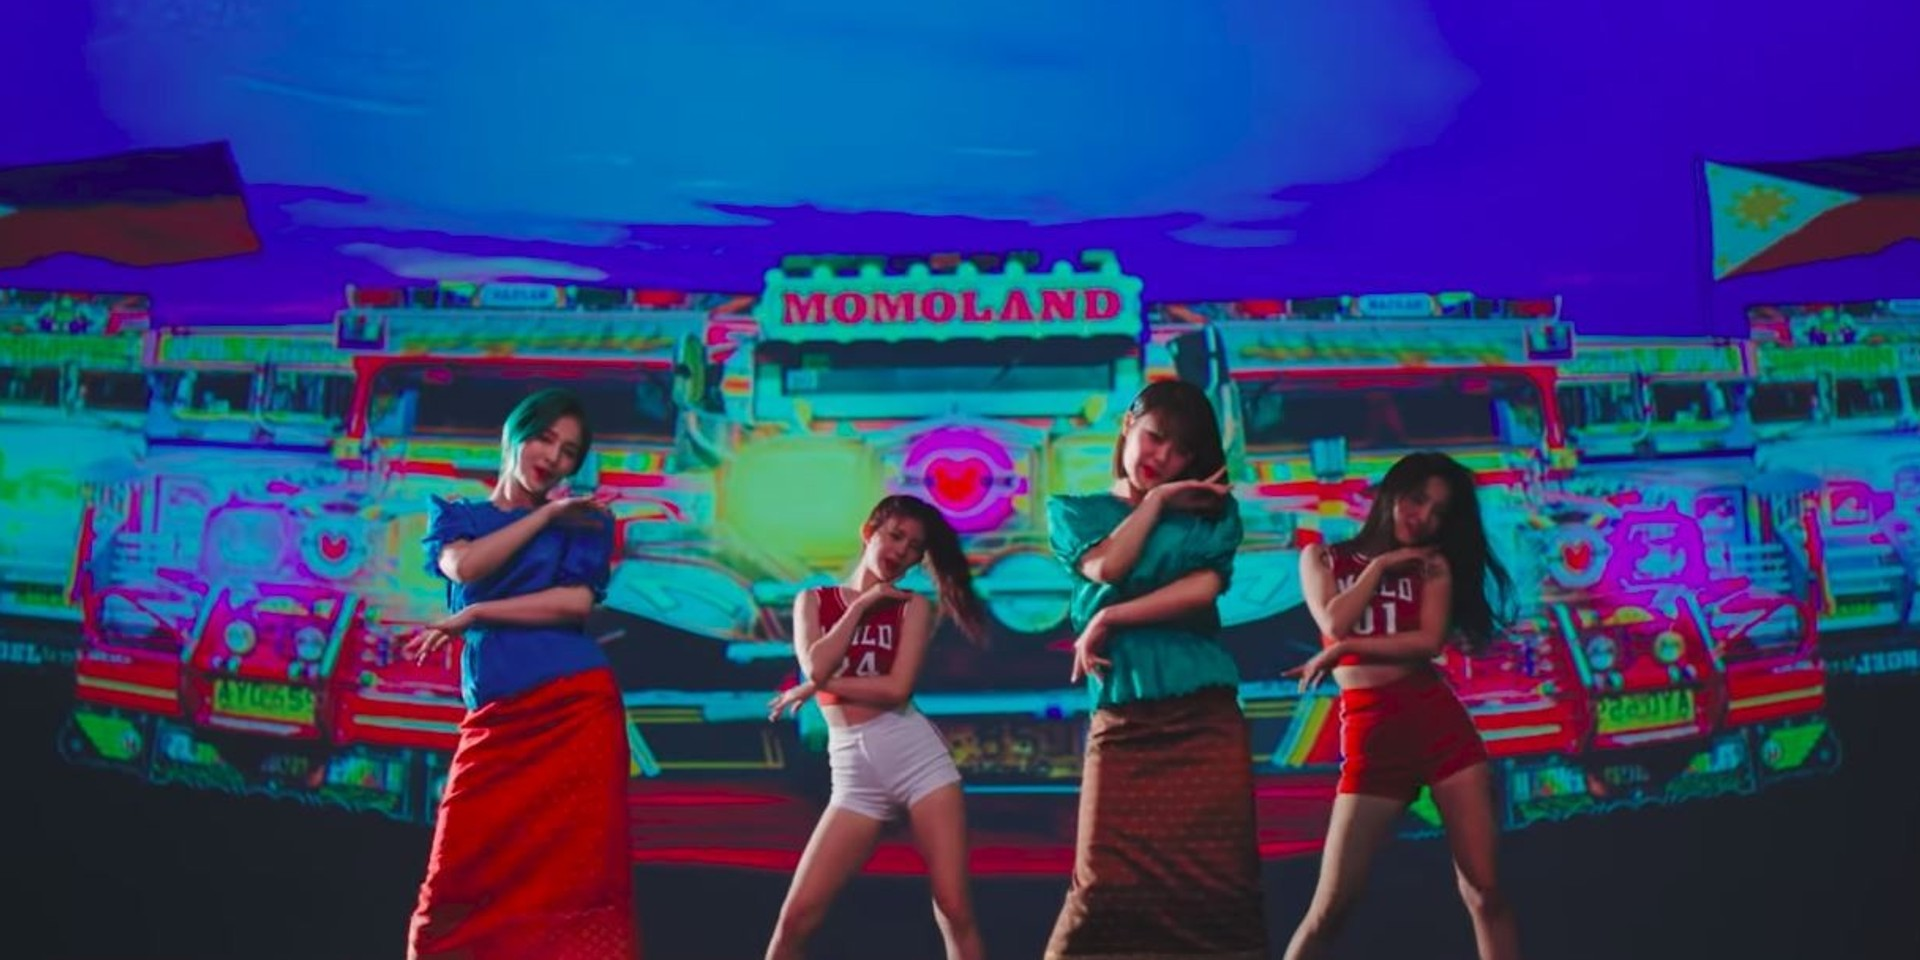 Momoland take on the world with 'Baam' video – watch